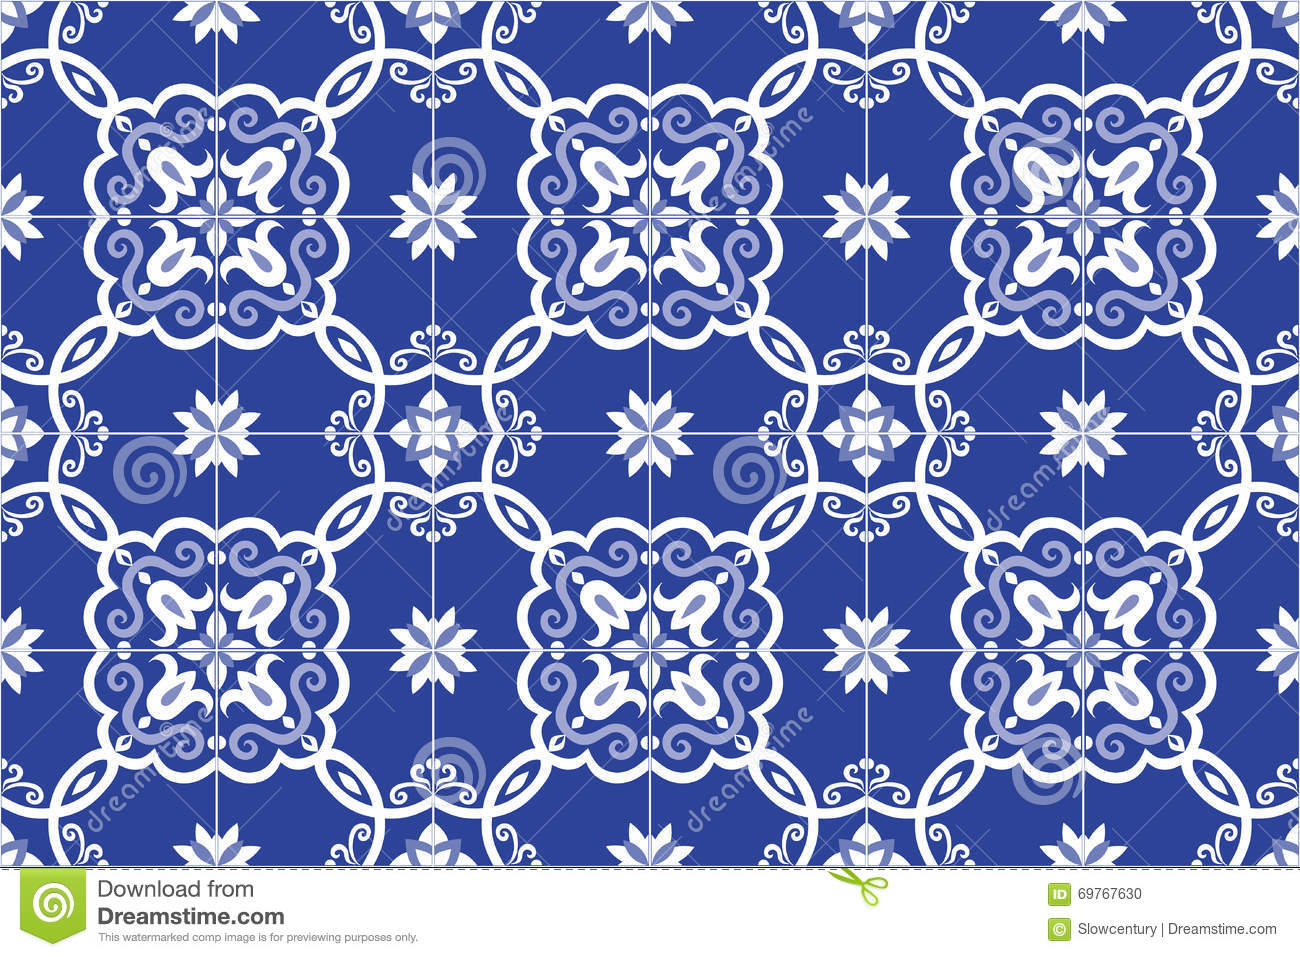 arabic style house designs html with Traditional Portuguese Tiles Azulejos on Interior Design Ideas Bell Custom Homes 0948a06a2565803a further English S les moreover Classic Majlis Design together with Luxury Villas Exterior Design In UAE additionally 3 Beautiful Kerala Home Elevations.